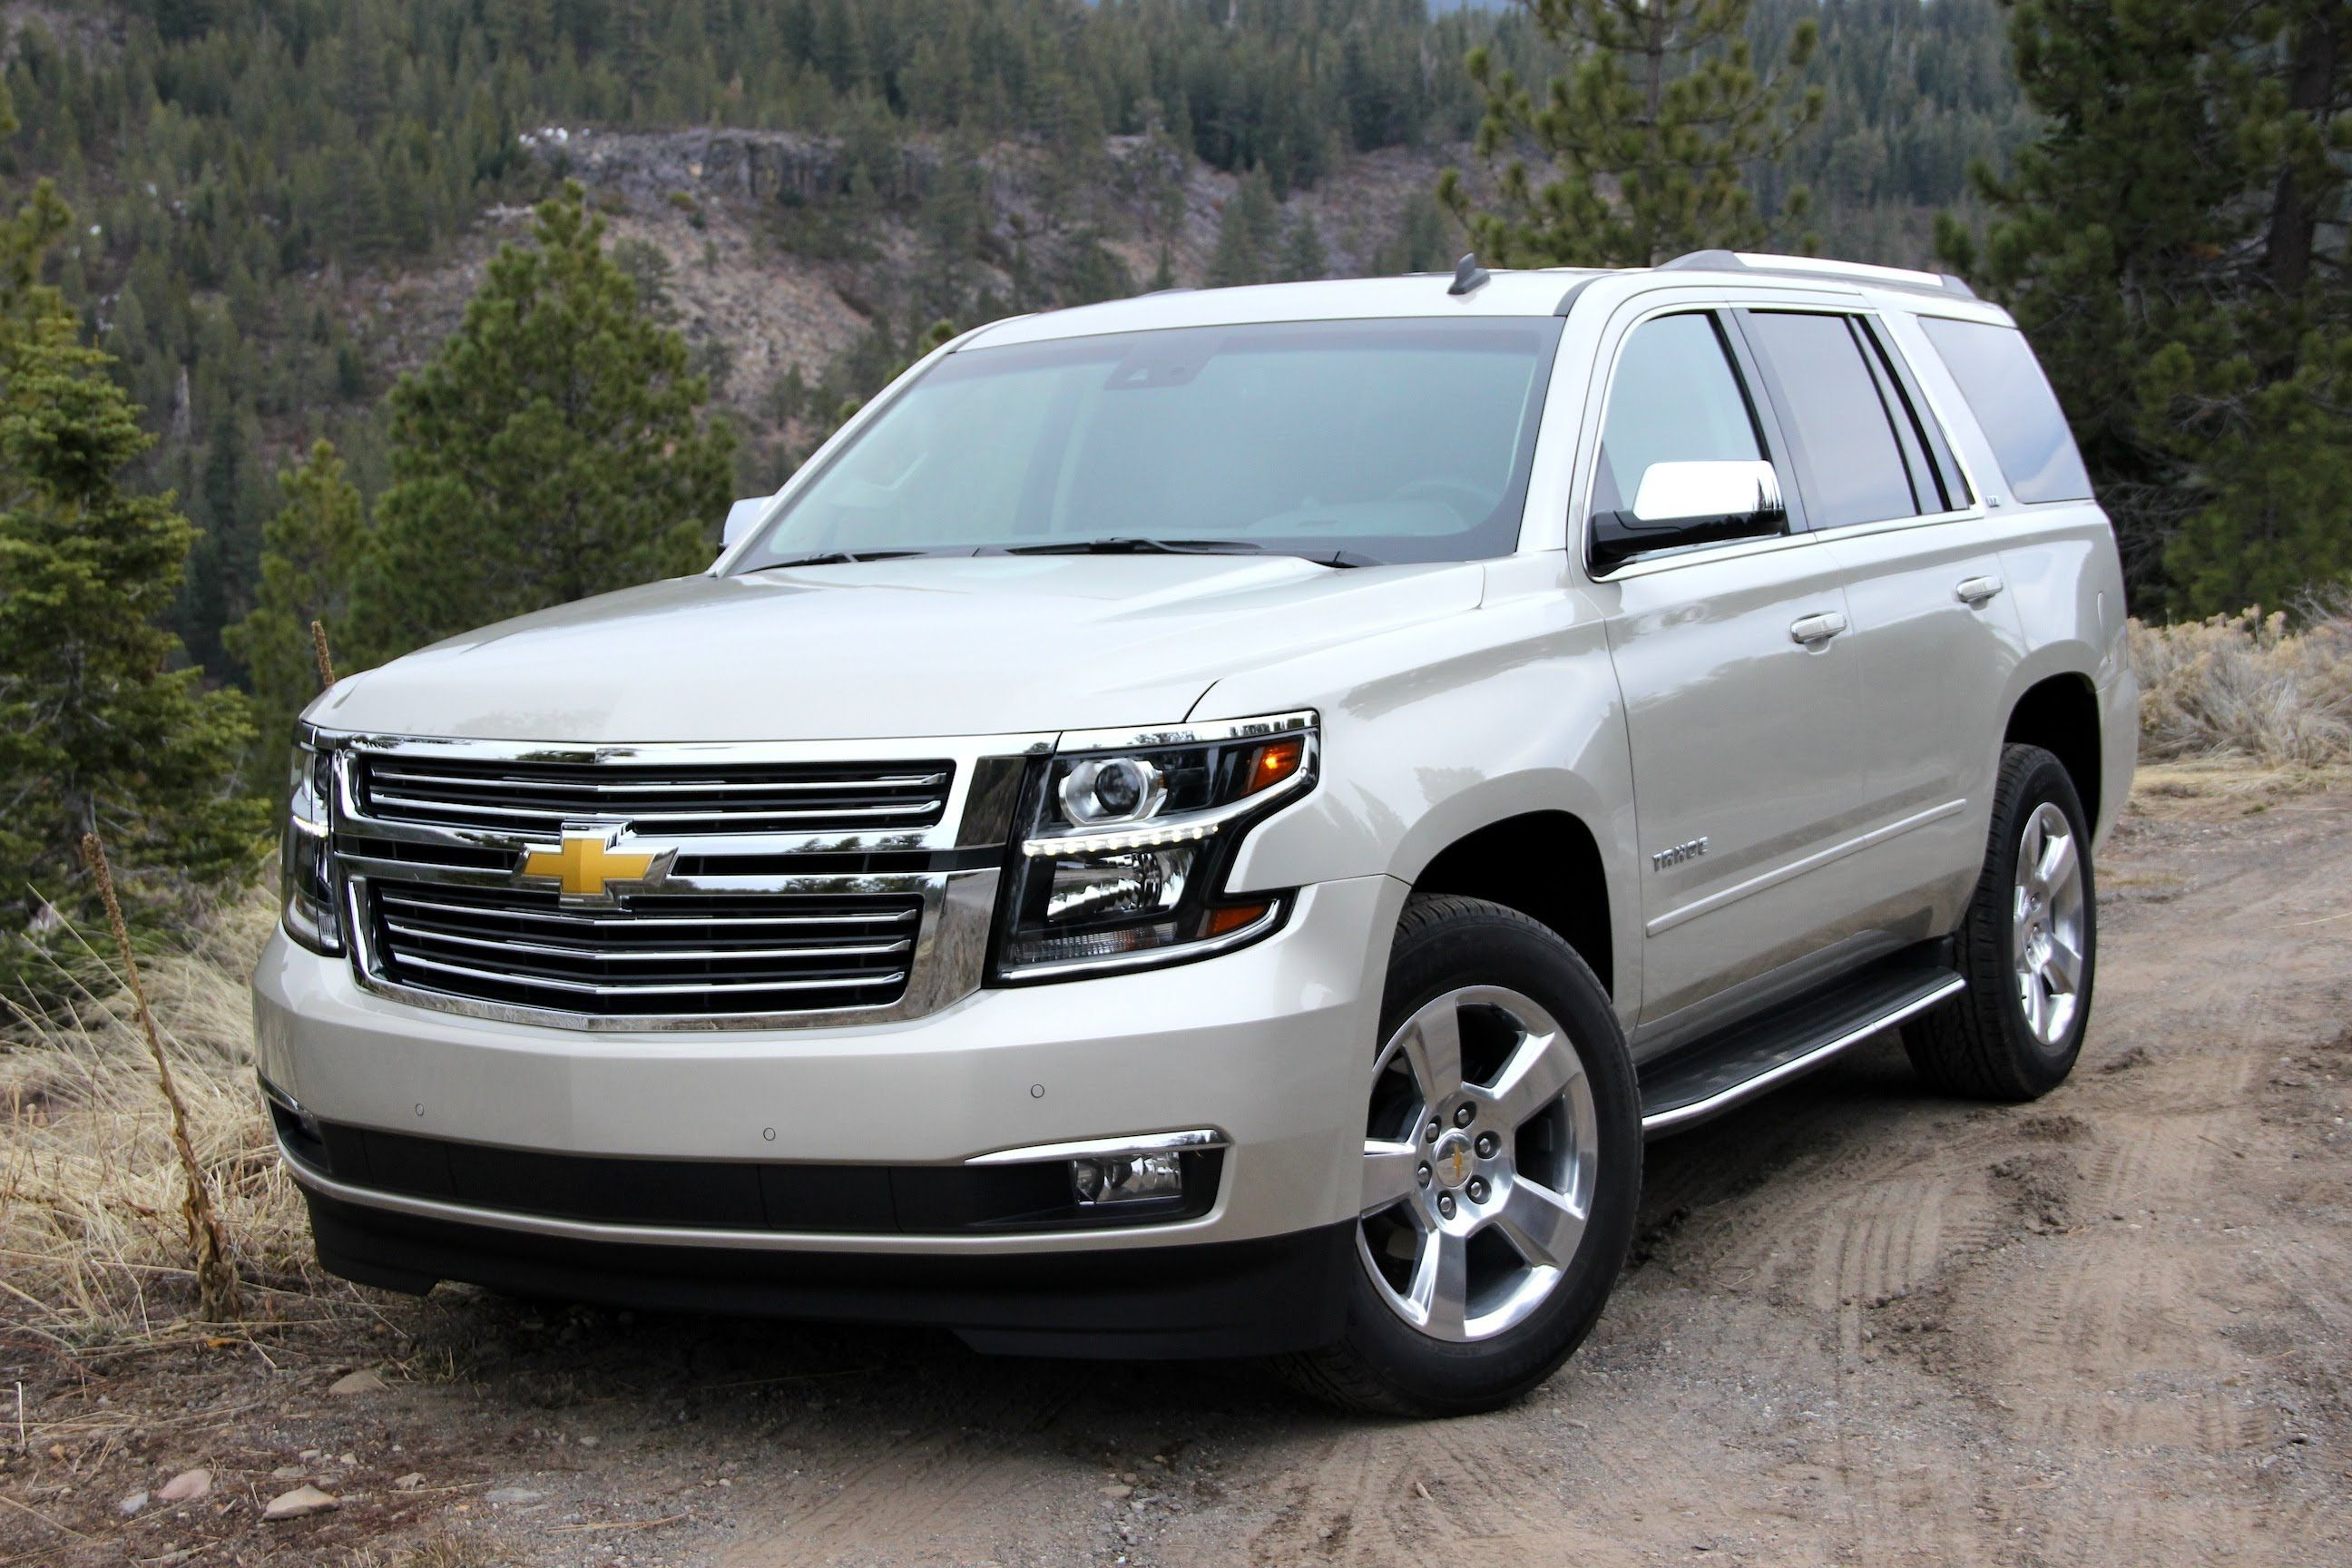 Cool 2014 chevy tahoe austin